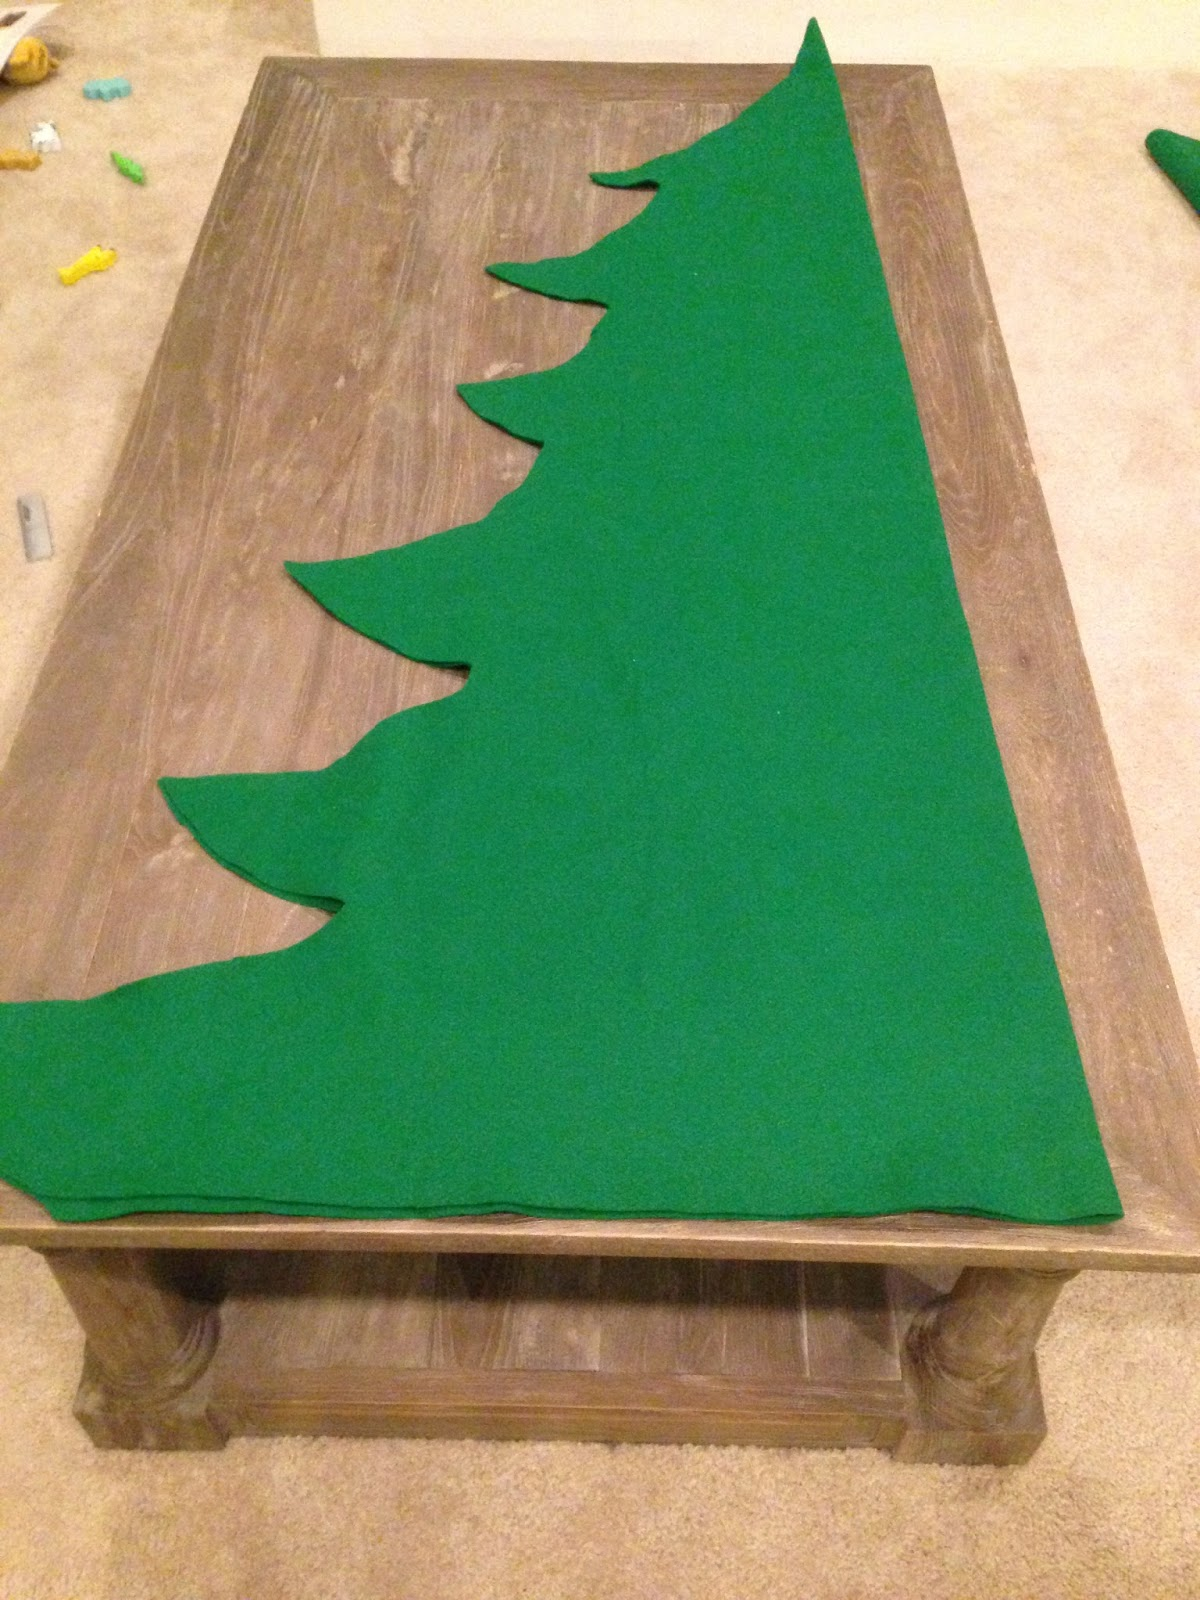 Wife Without Borders: Weekly Pinterest Project: Felt ...